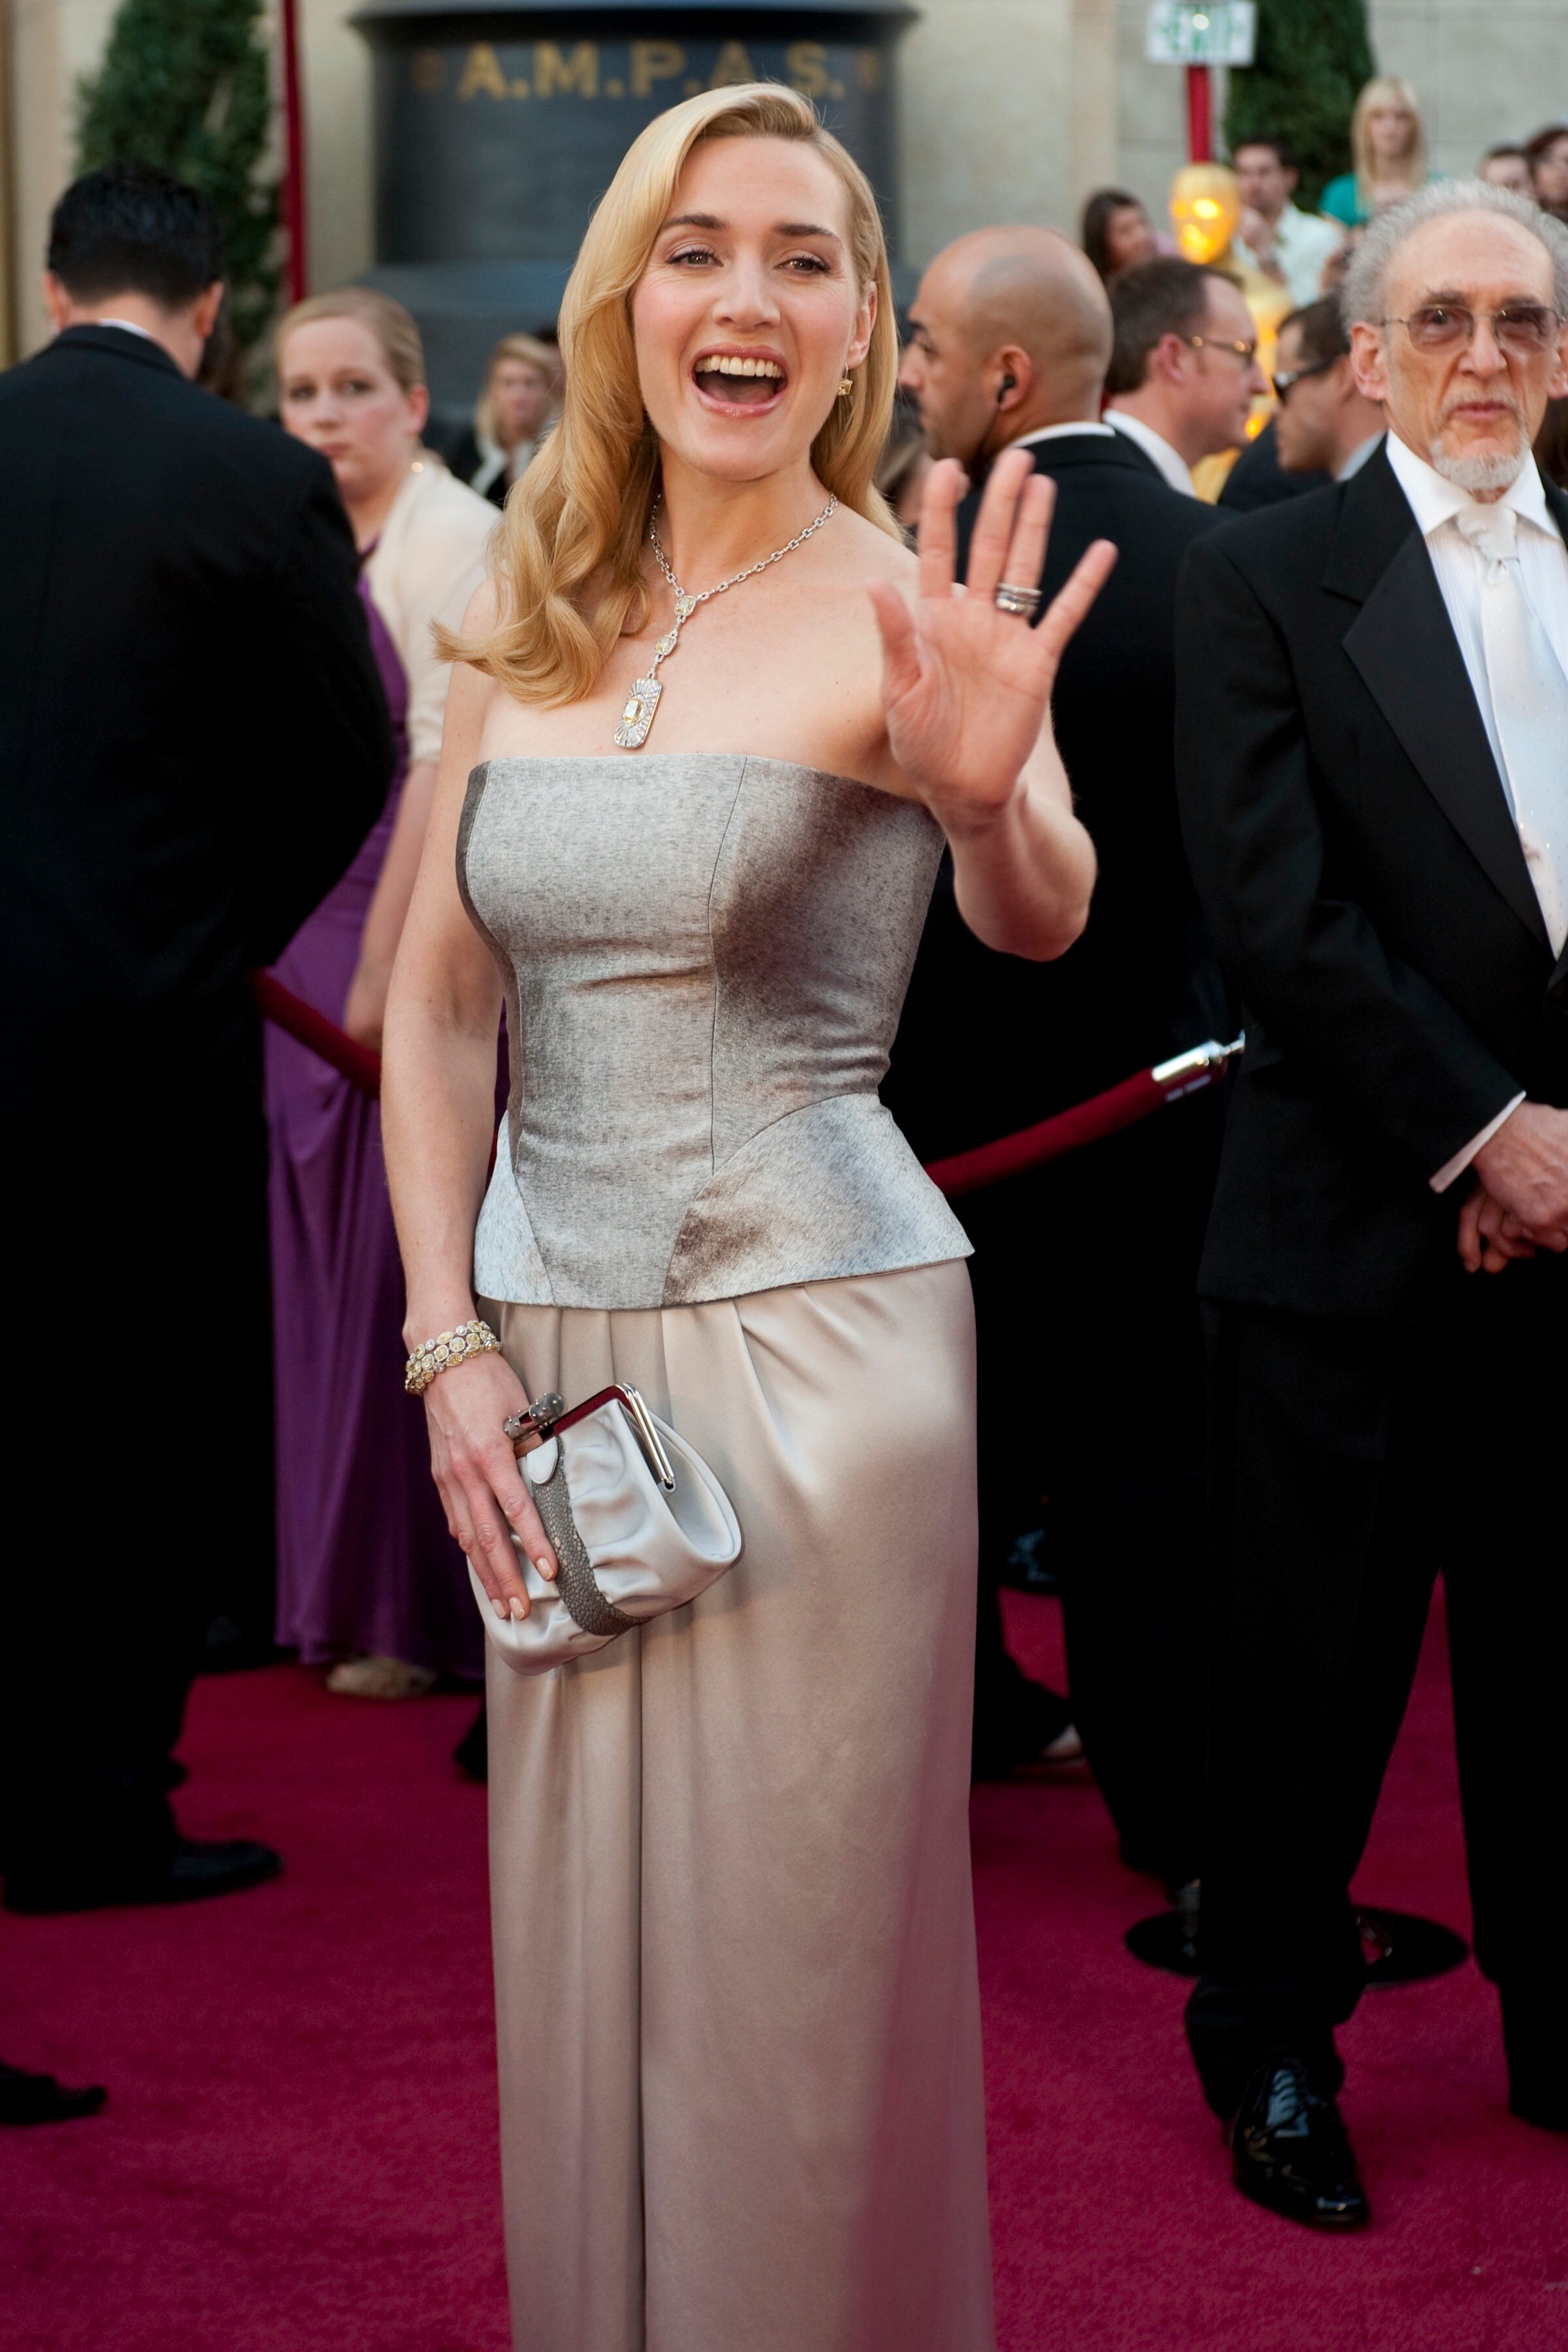 Academy Award presenter Kate Winslet arrives.